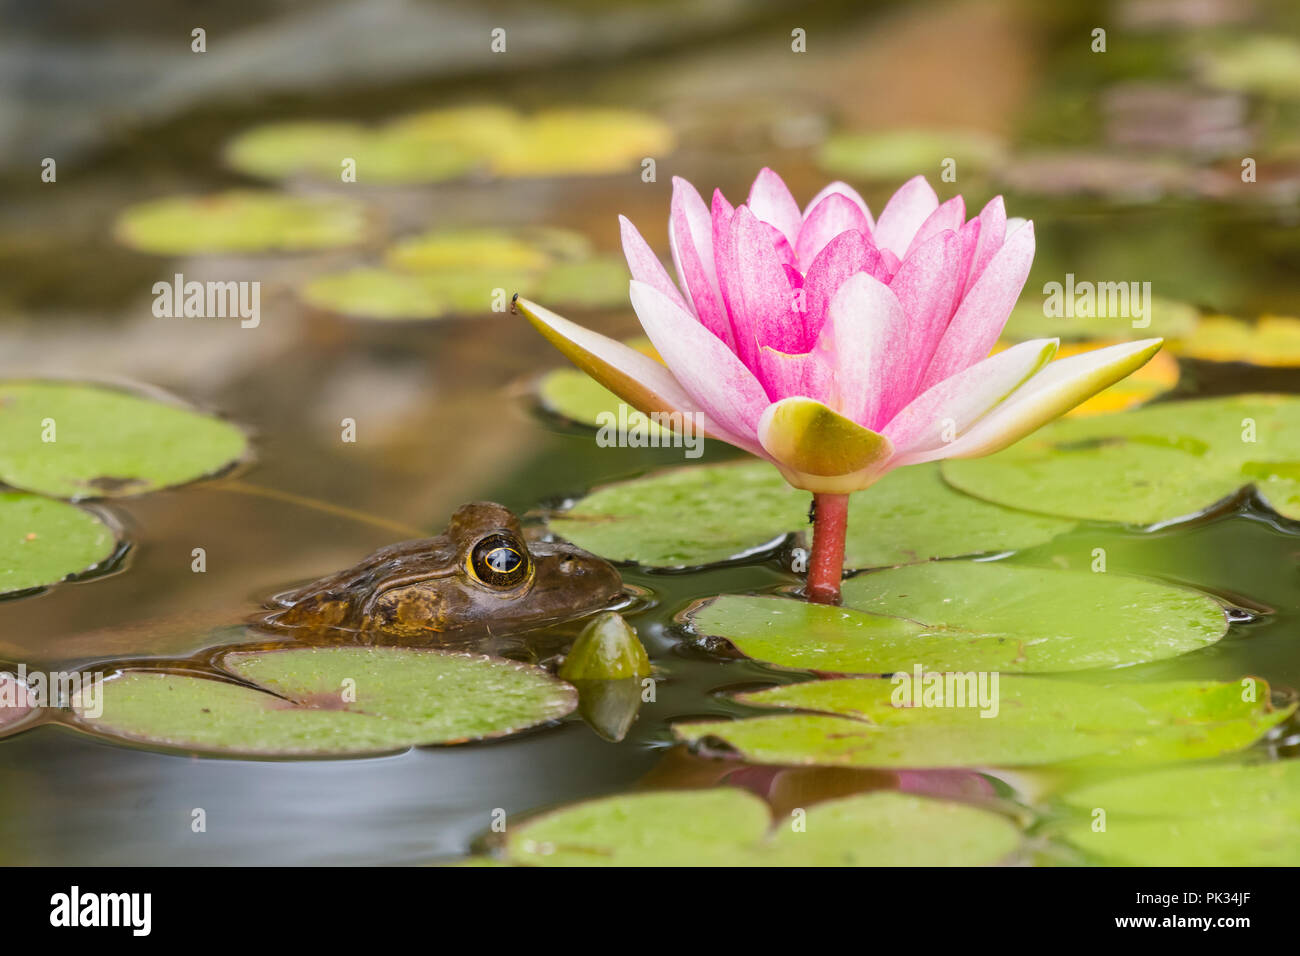 Pink flower and lily pad frog stock photos pink flower and lily american bullfrog next to a pink lily pad and flower stock image izmirmasajfo